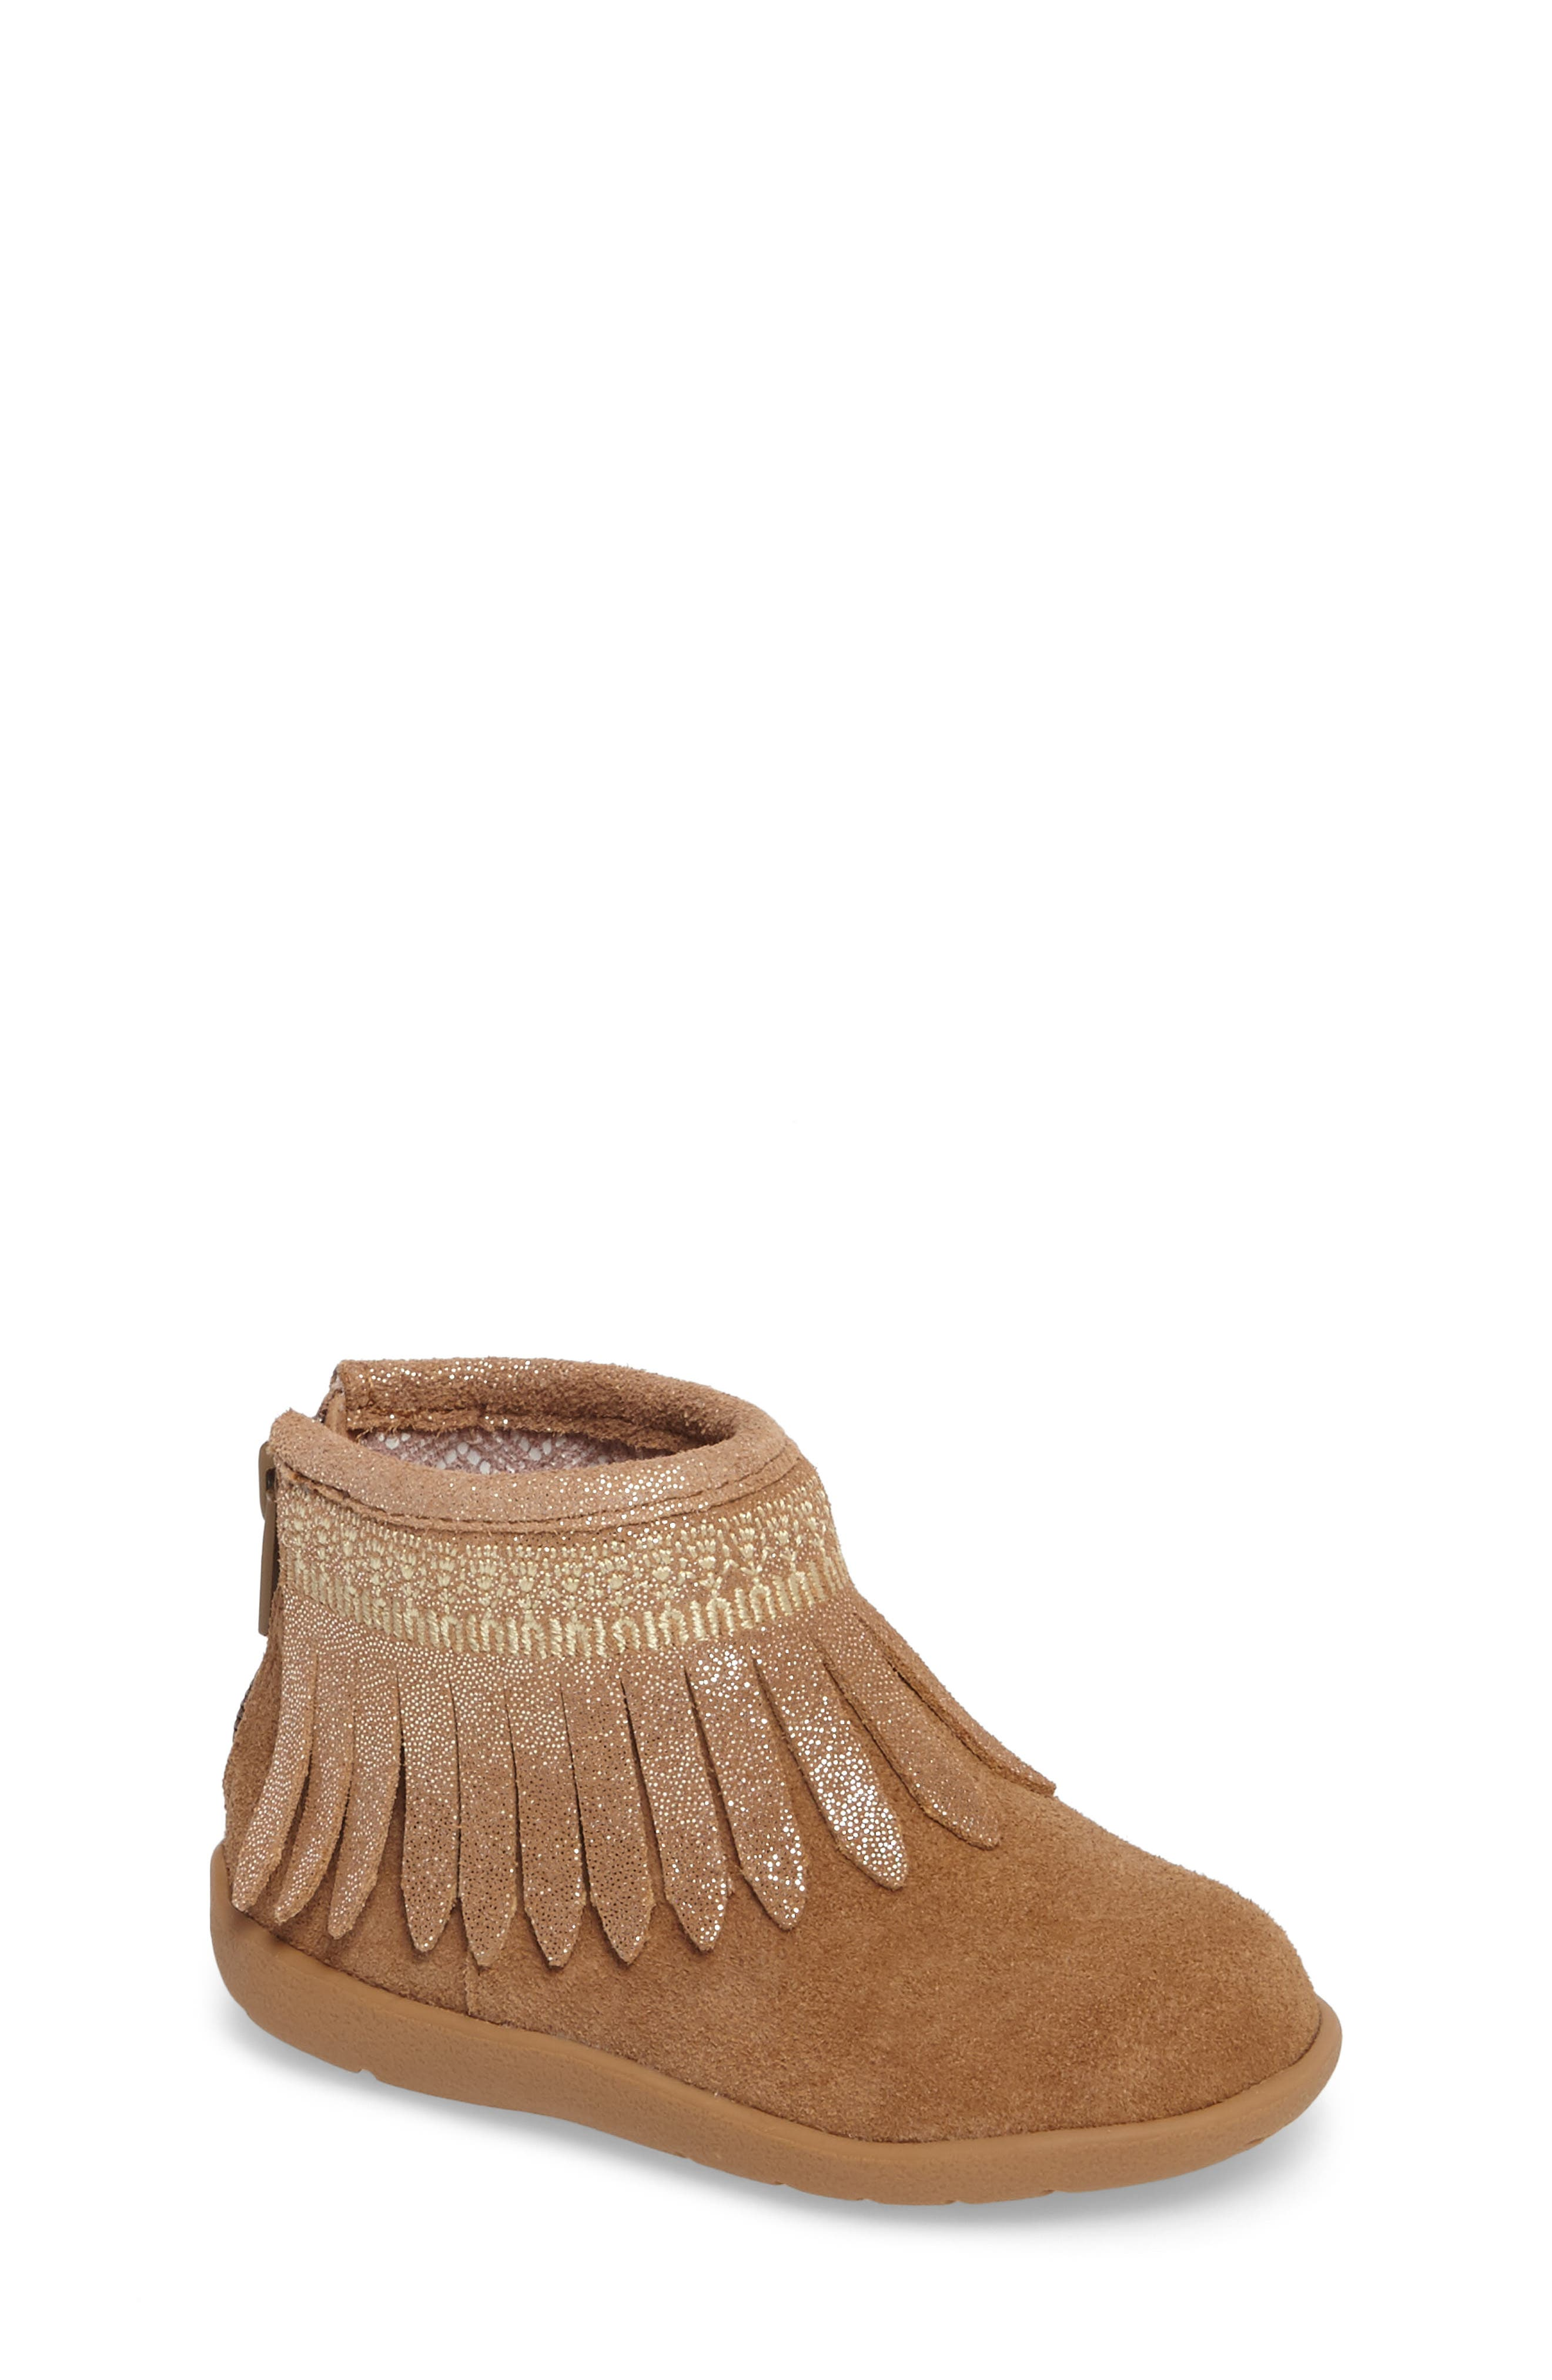 Tucker + Tate Gracia Sparkle Fringe Bootie (Baby, Walker & Toddler)